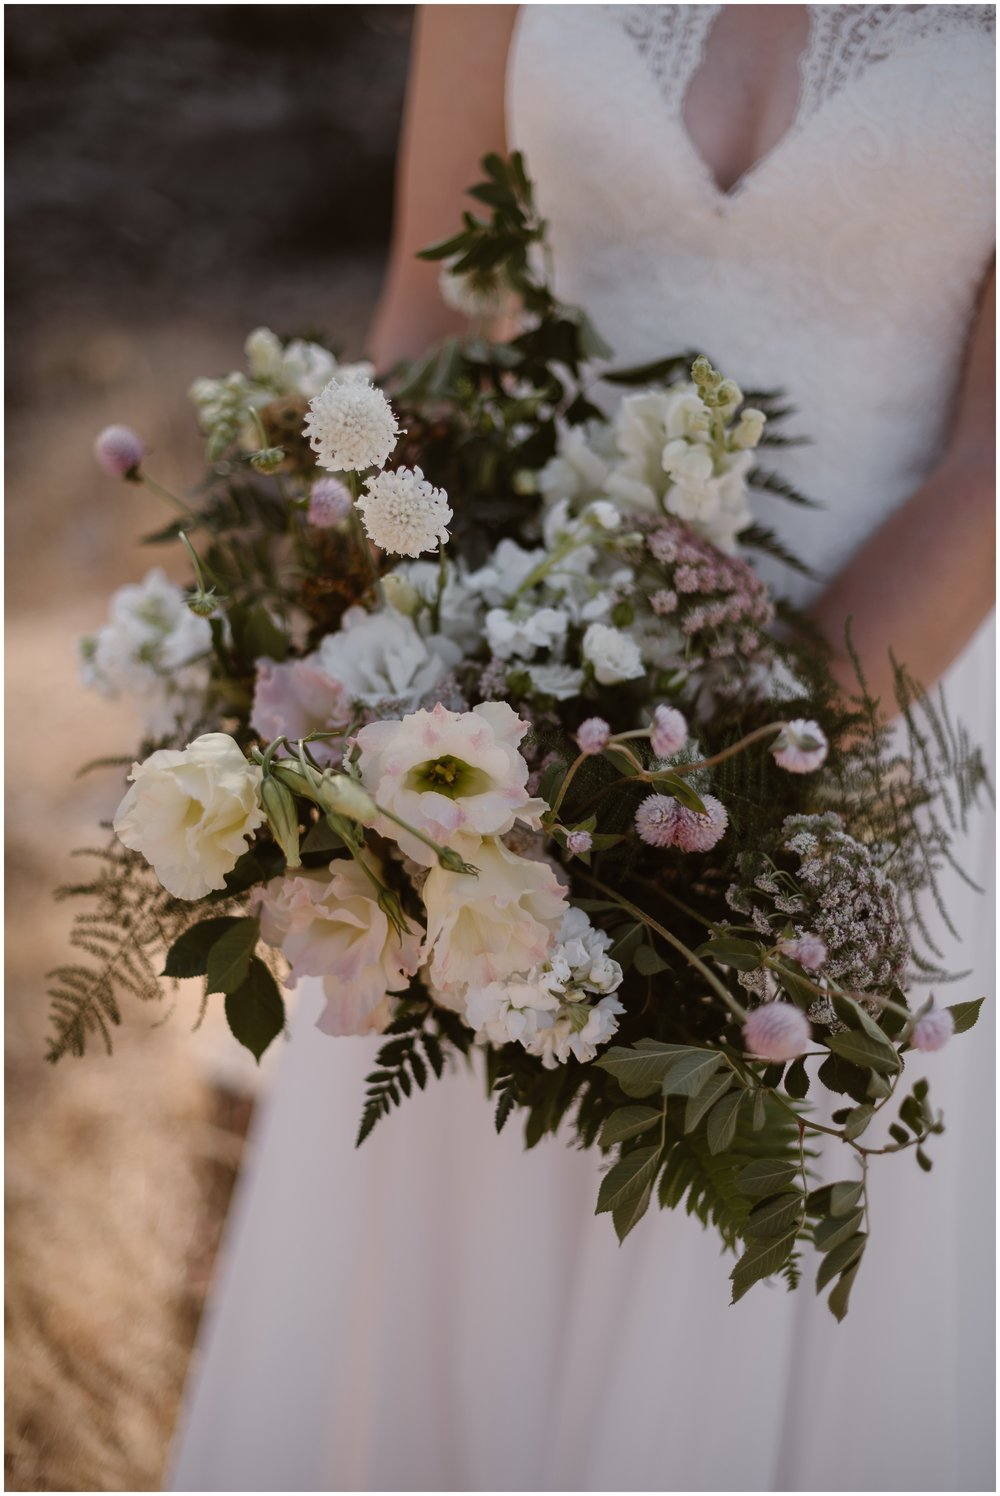 Lauryn shows off her beautiful, custom bouquet of flowers — this is always one of the best elopement ideas to include in your small simple wedding. Lauryn's bouquet includes beautiful white, light pink, and green foliage, a very PNW bouquet.